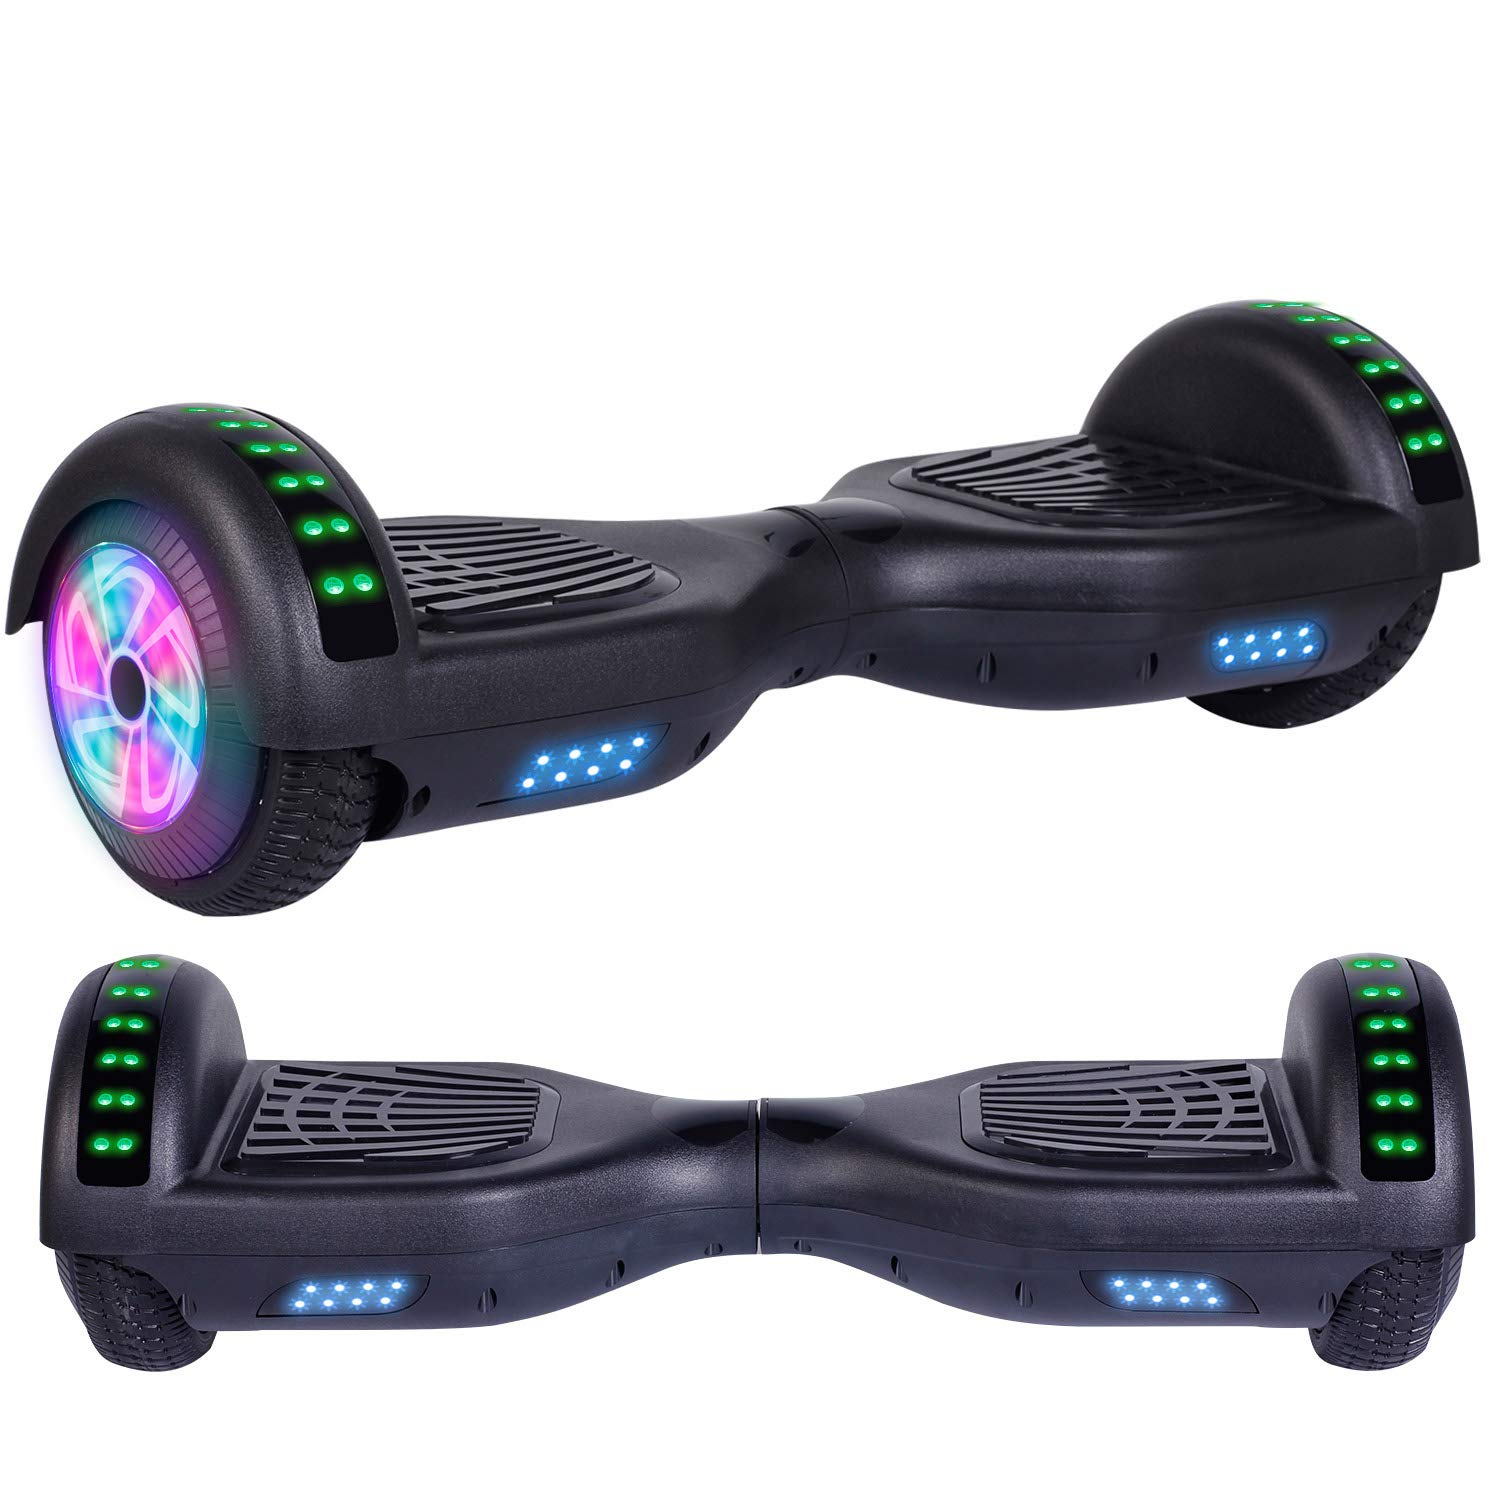 Felimoda Hoverboard, w Bluetooth Speaker for Kid and Adult- UL2272 Certified